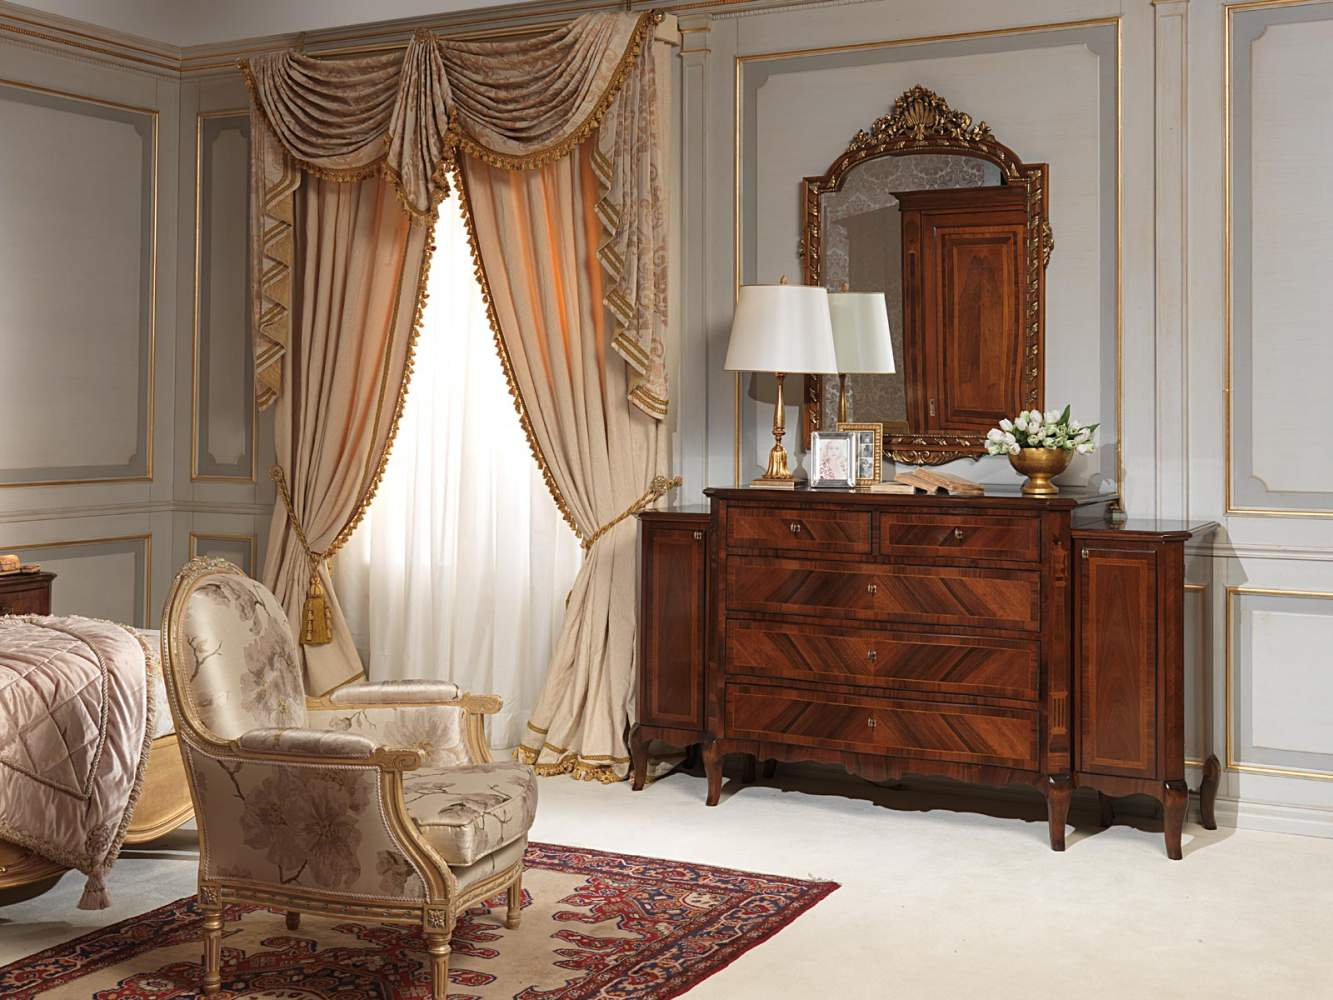 Classic 19th century french bedroom, chest of drawers in walnut, wall mirror and armchair